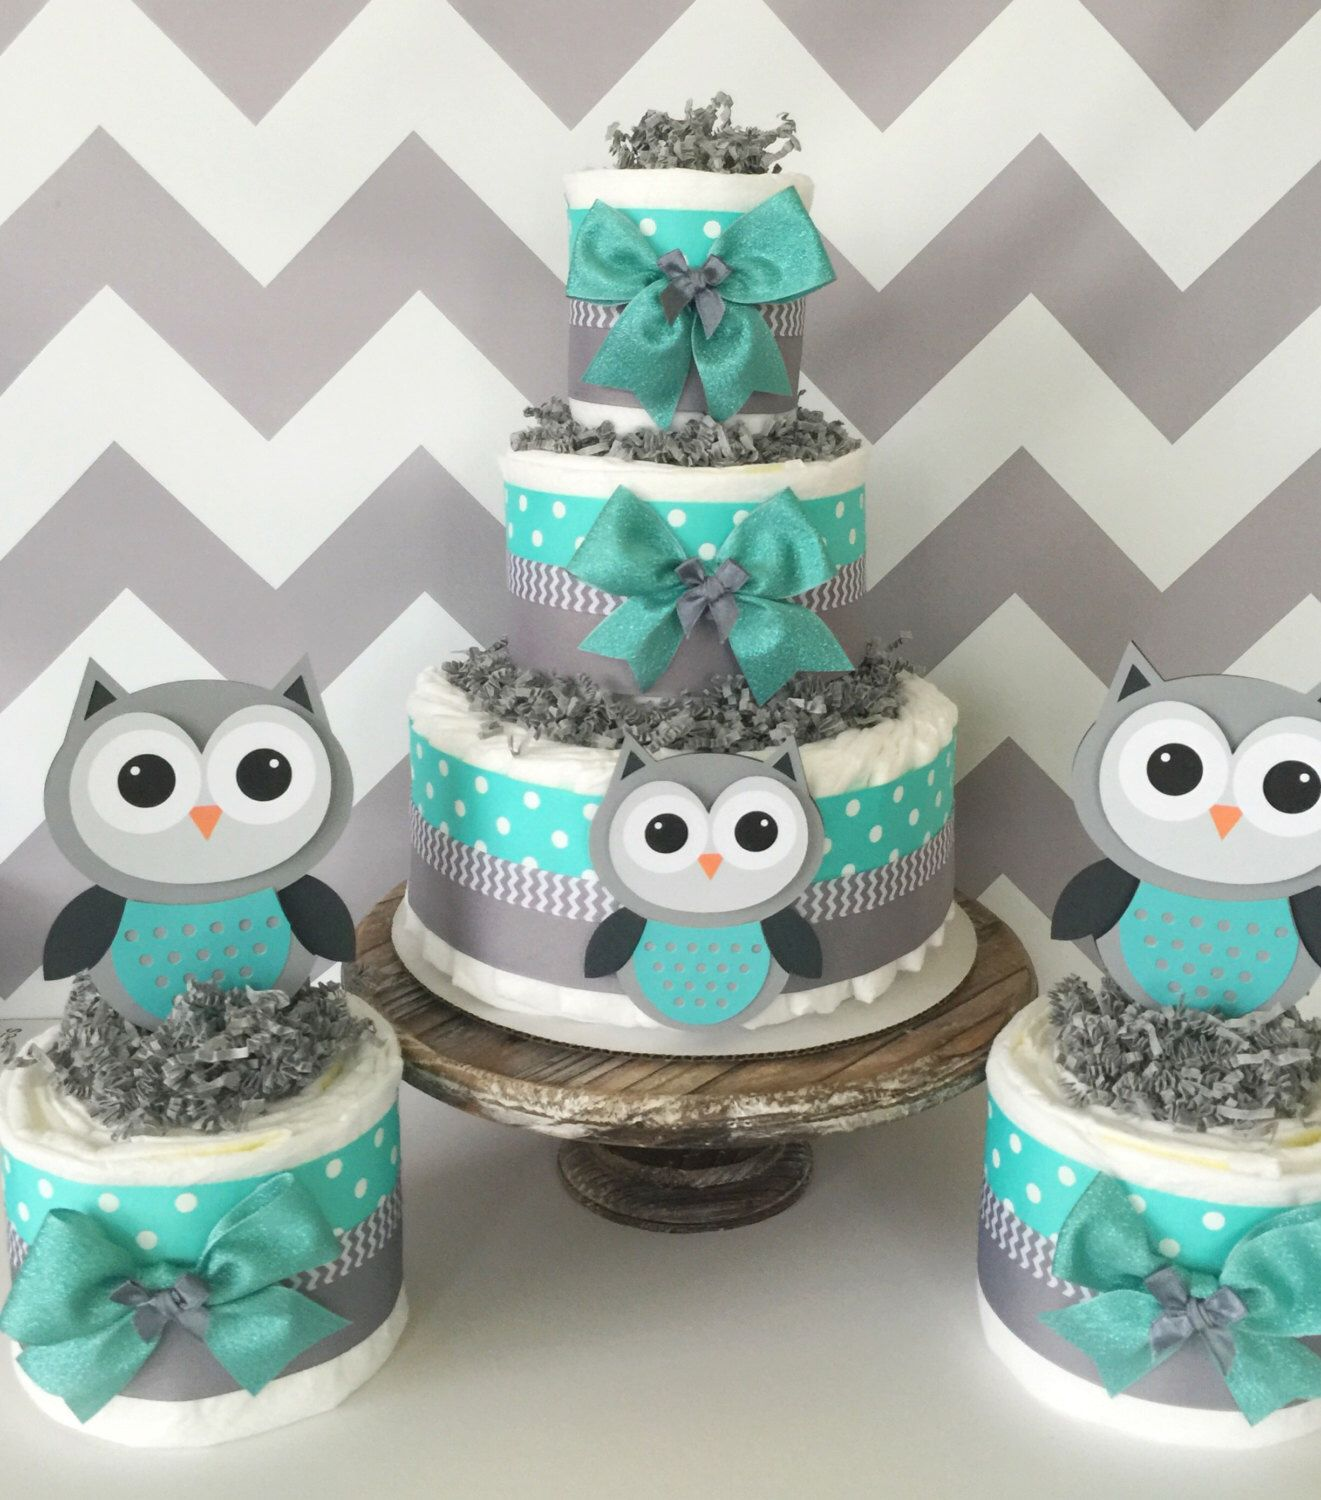 Set Of 3 Owl Diaper Cakes In Turqoise Teal Gray And White